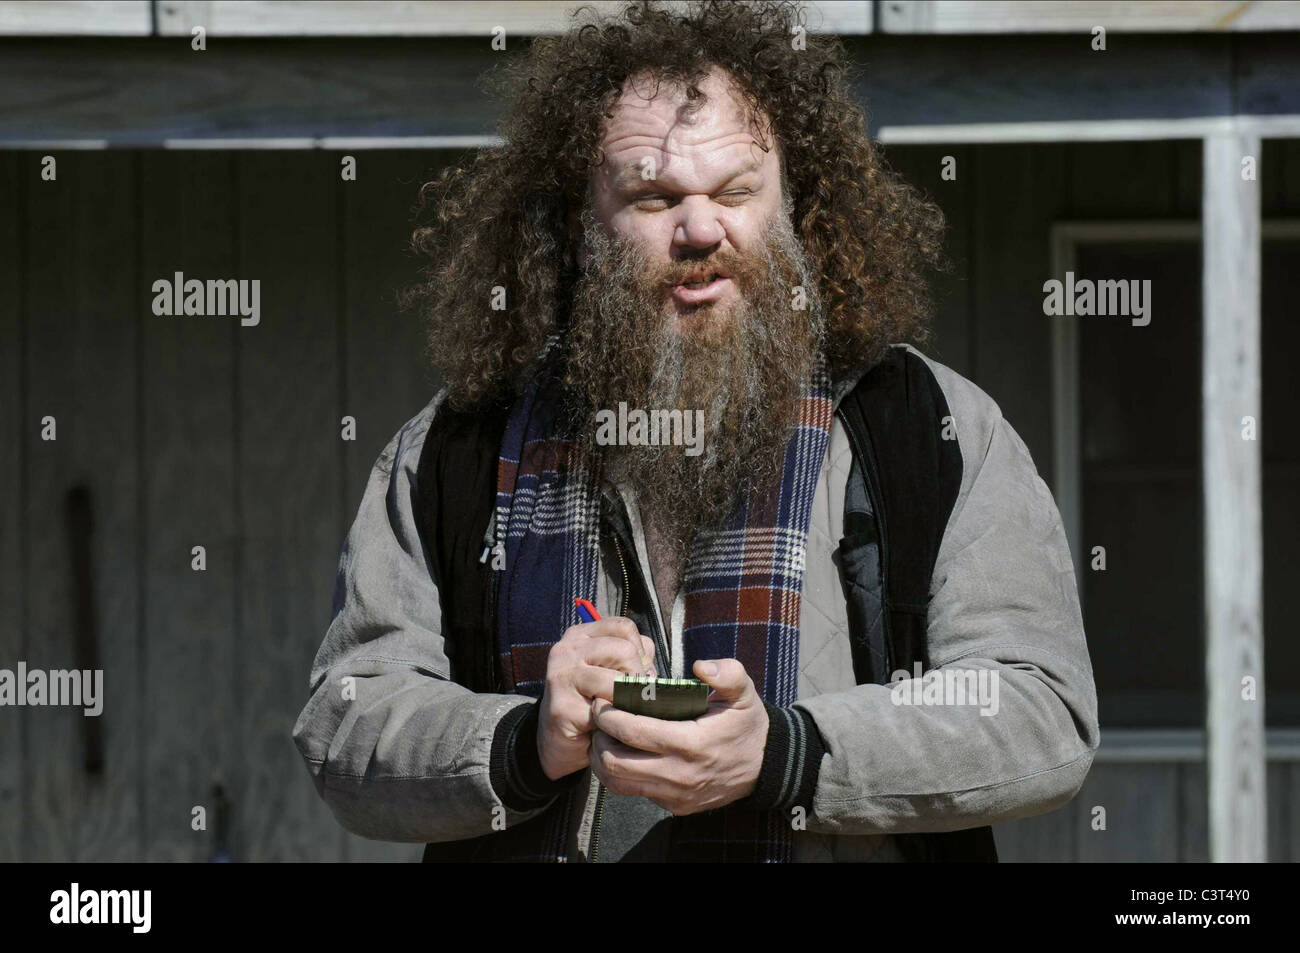 JOHN C. REILLY THE EXTRA MAN (2010) - Stock Image